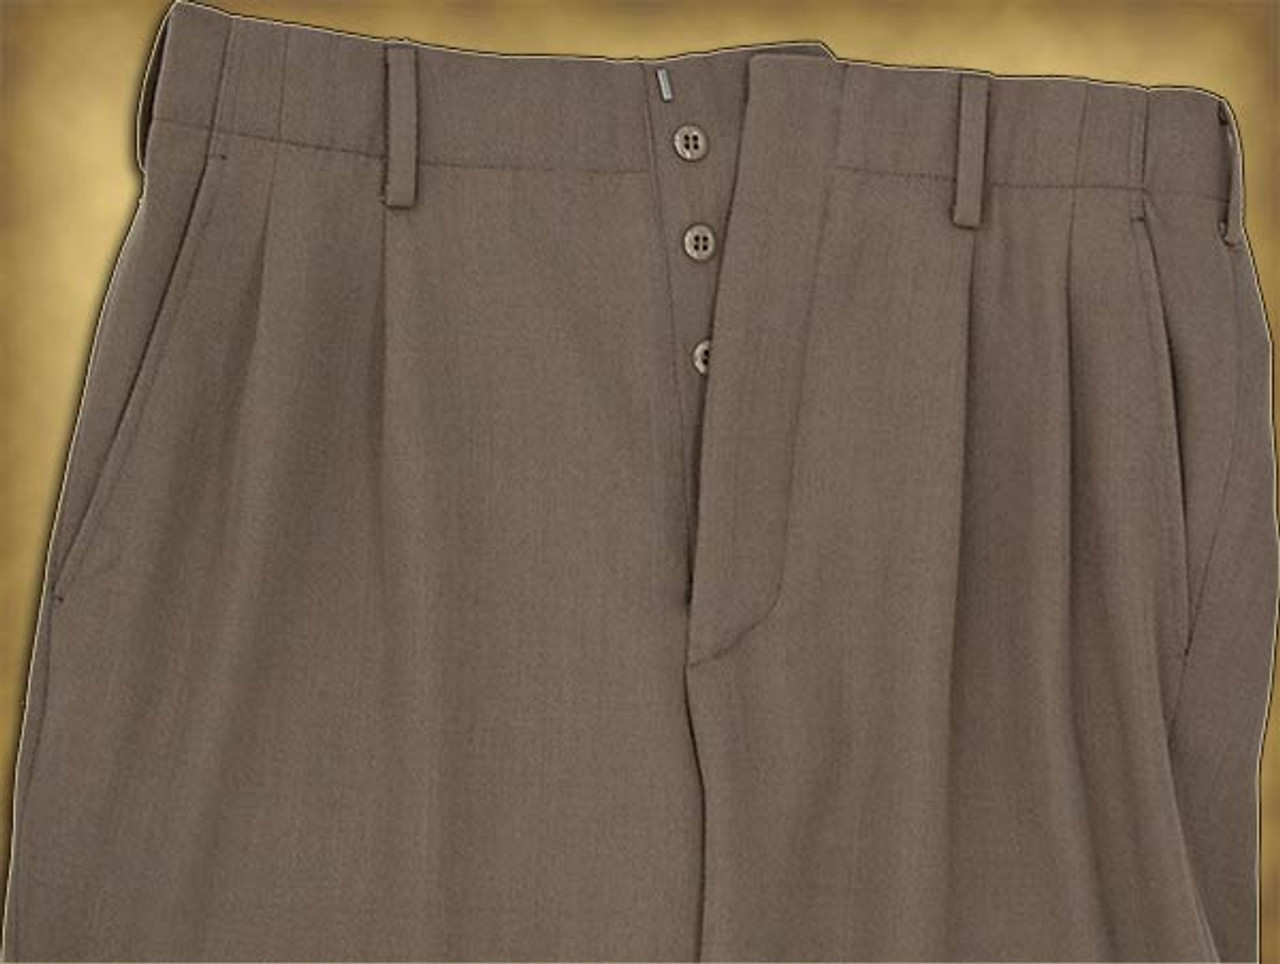 Indiana Jones Trousers Front 0b5c047fc31